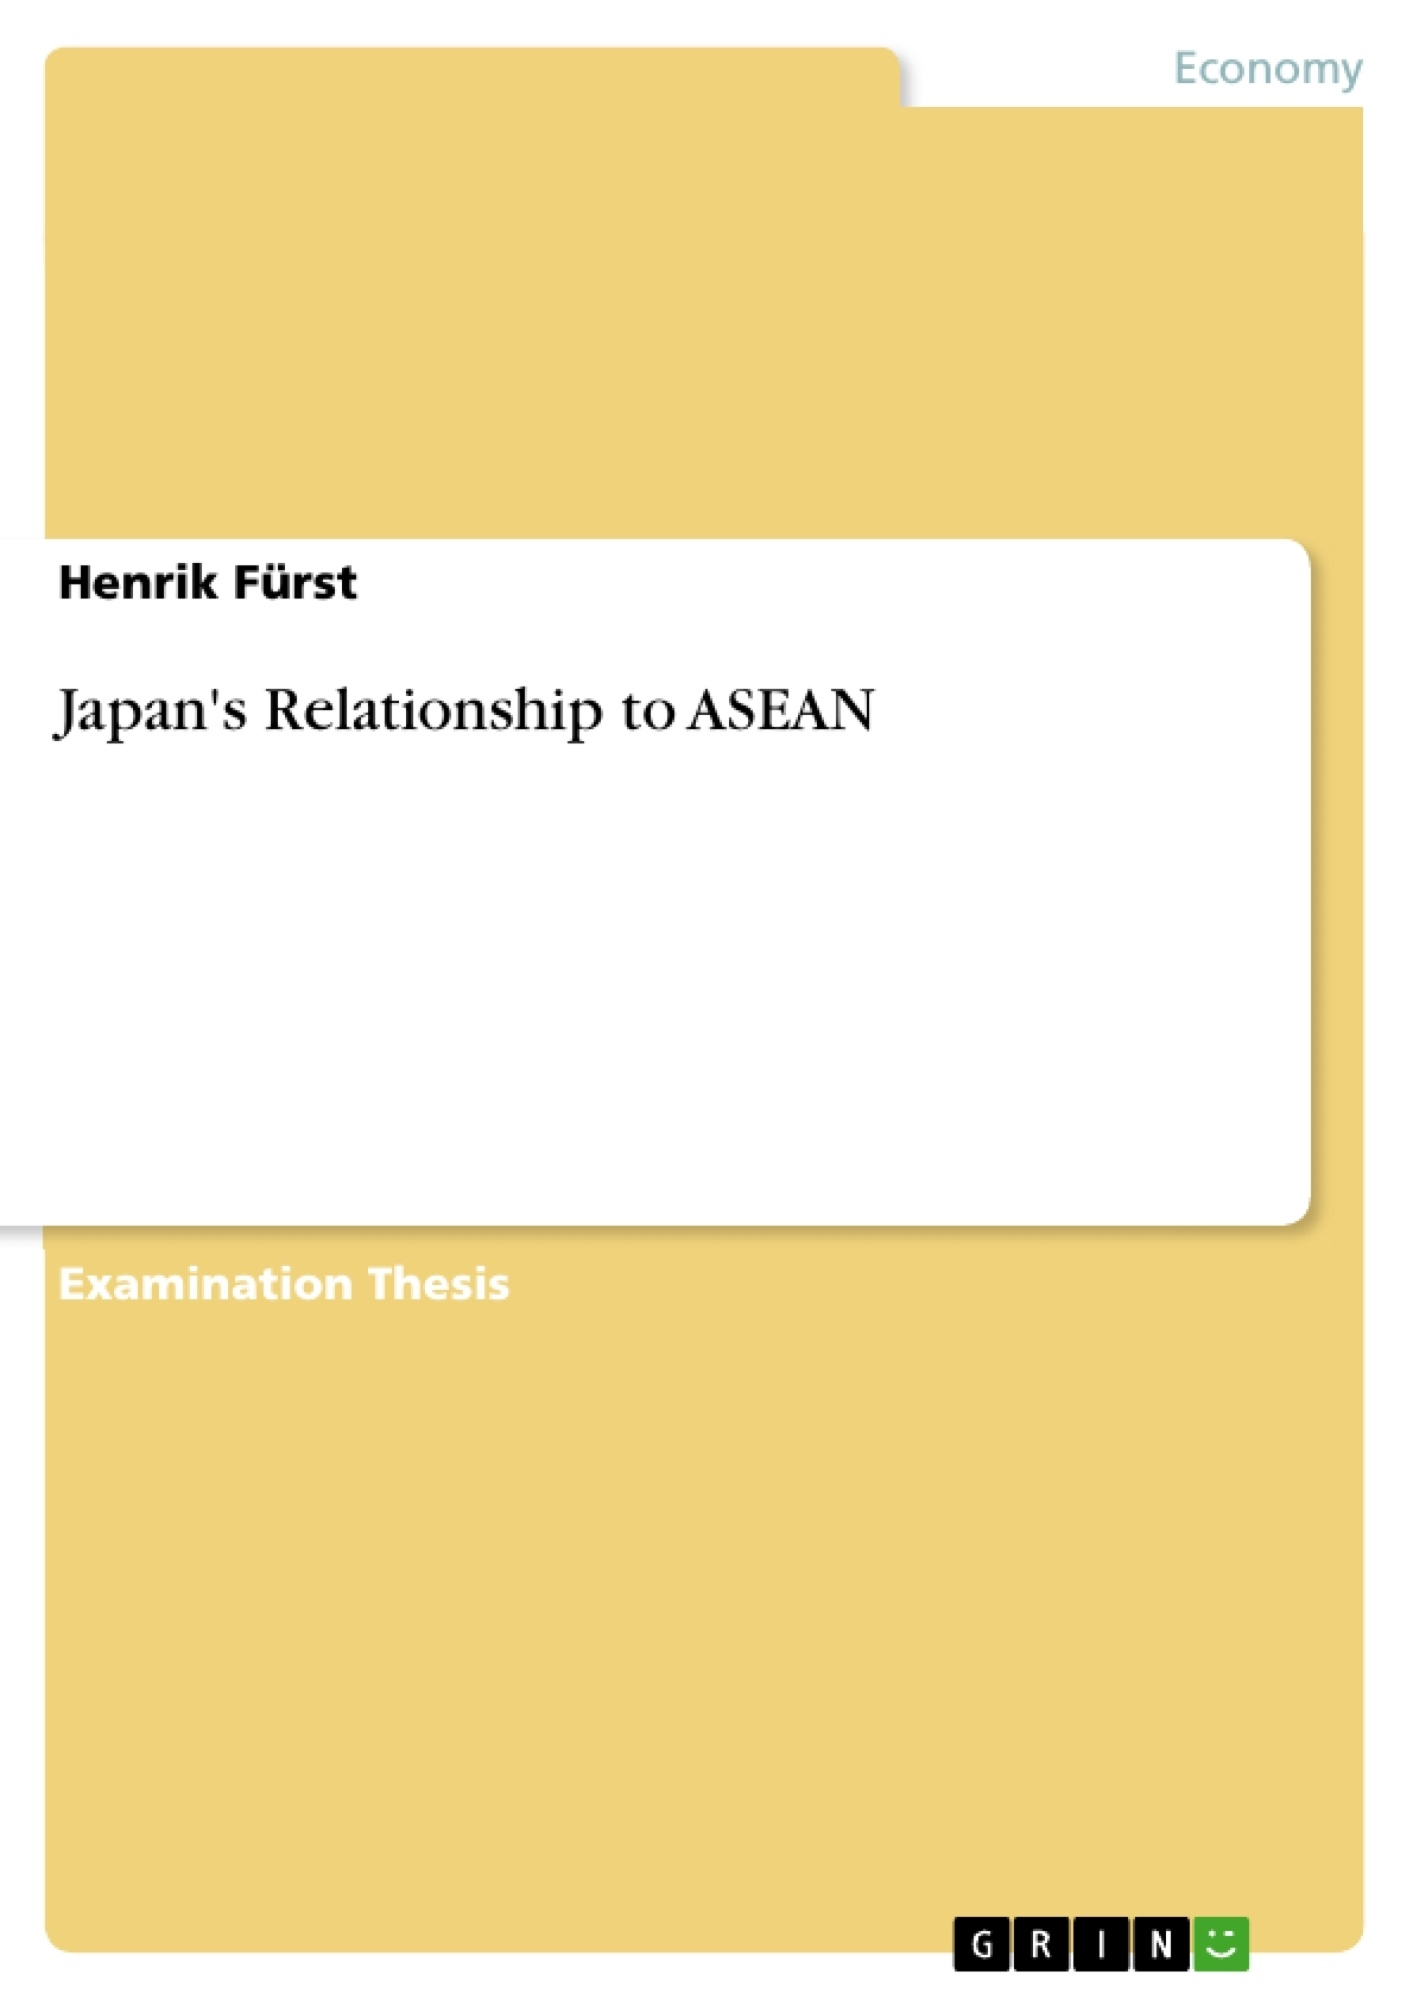 Title: Japan's Relationship to ASEAN